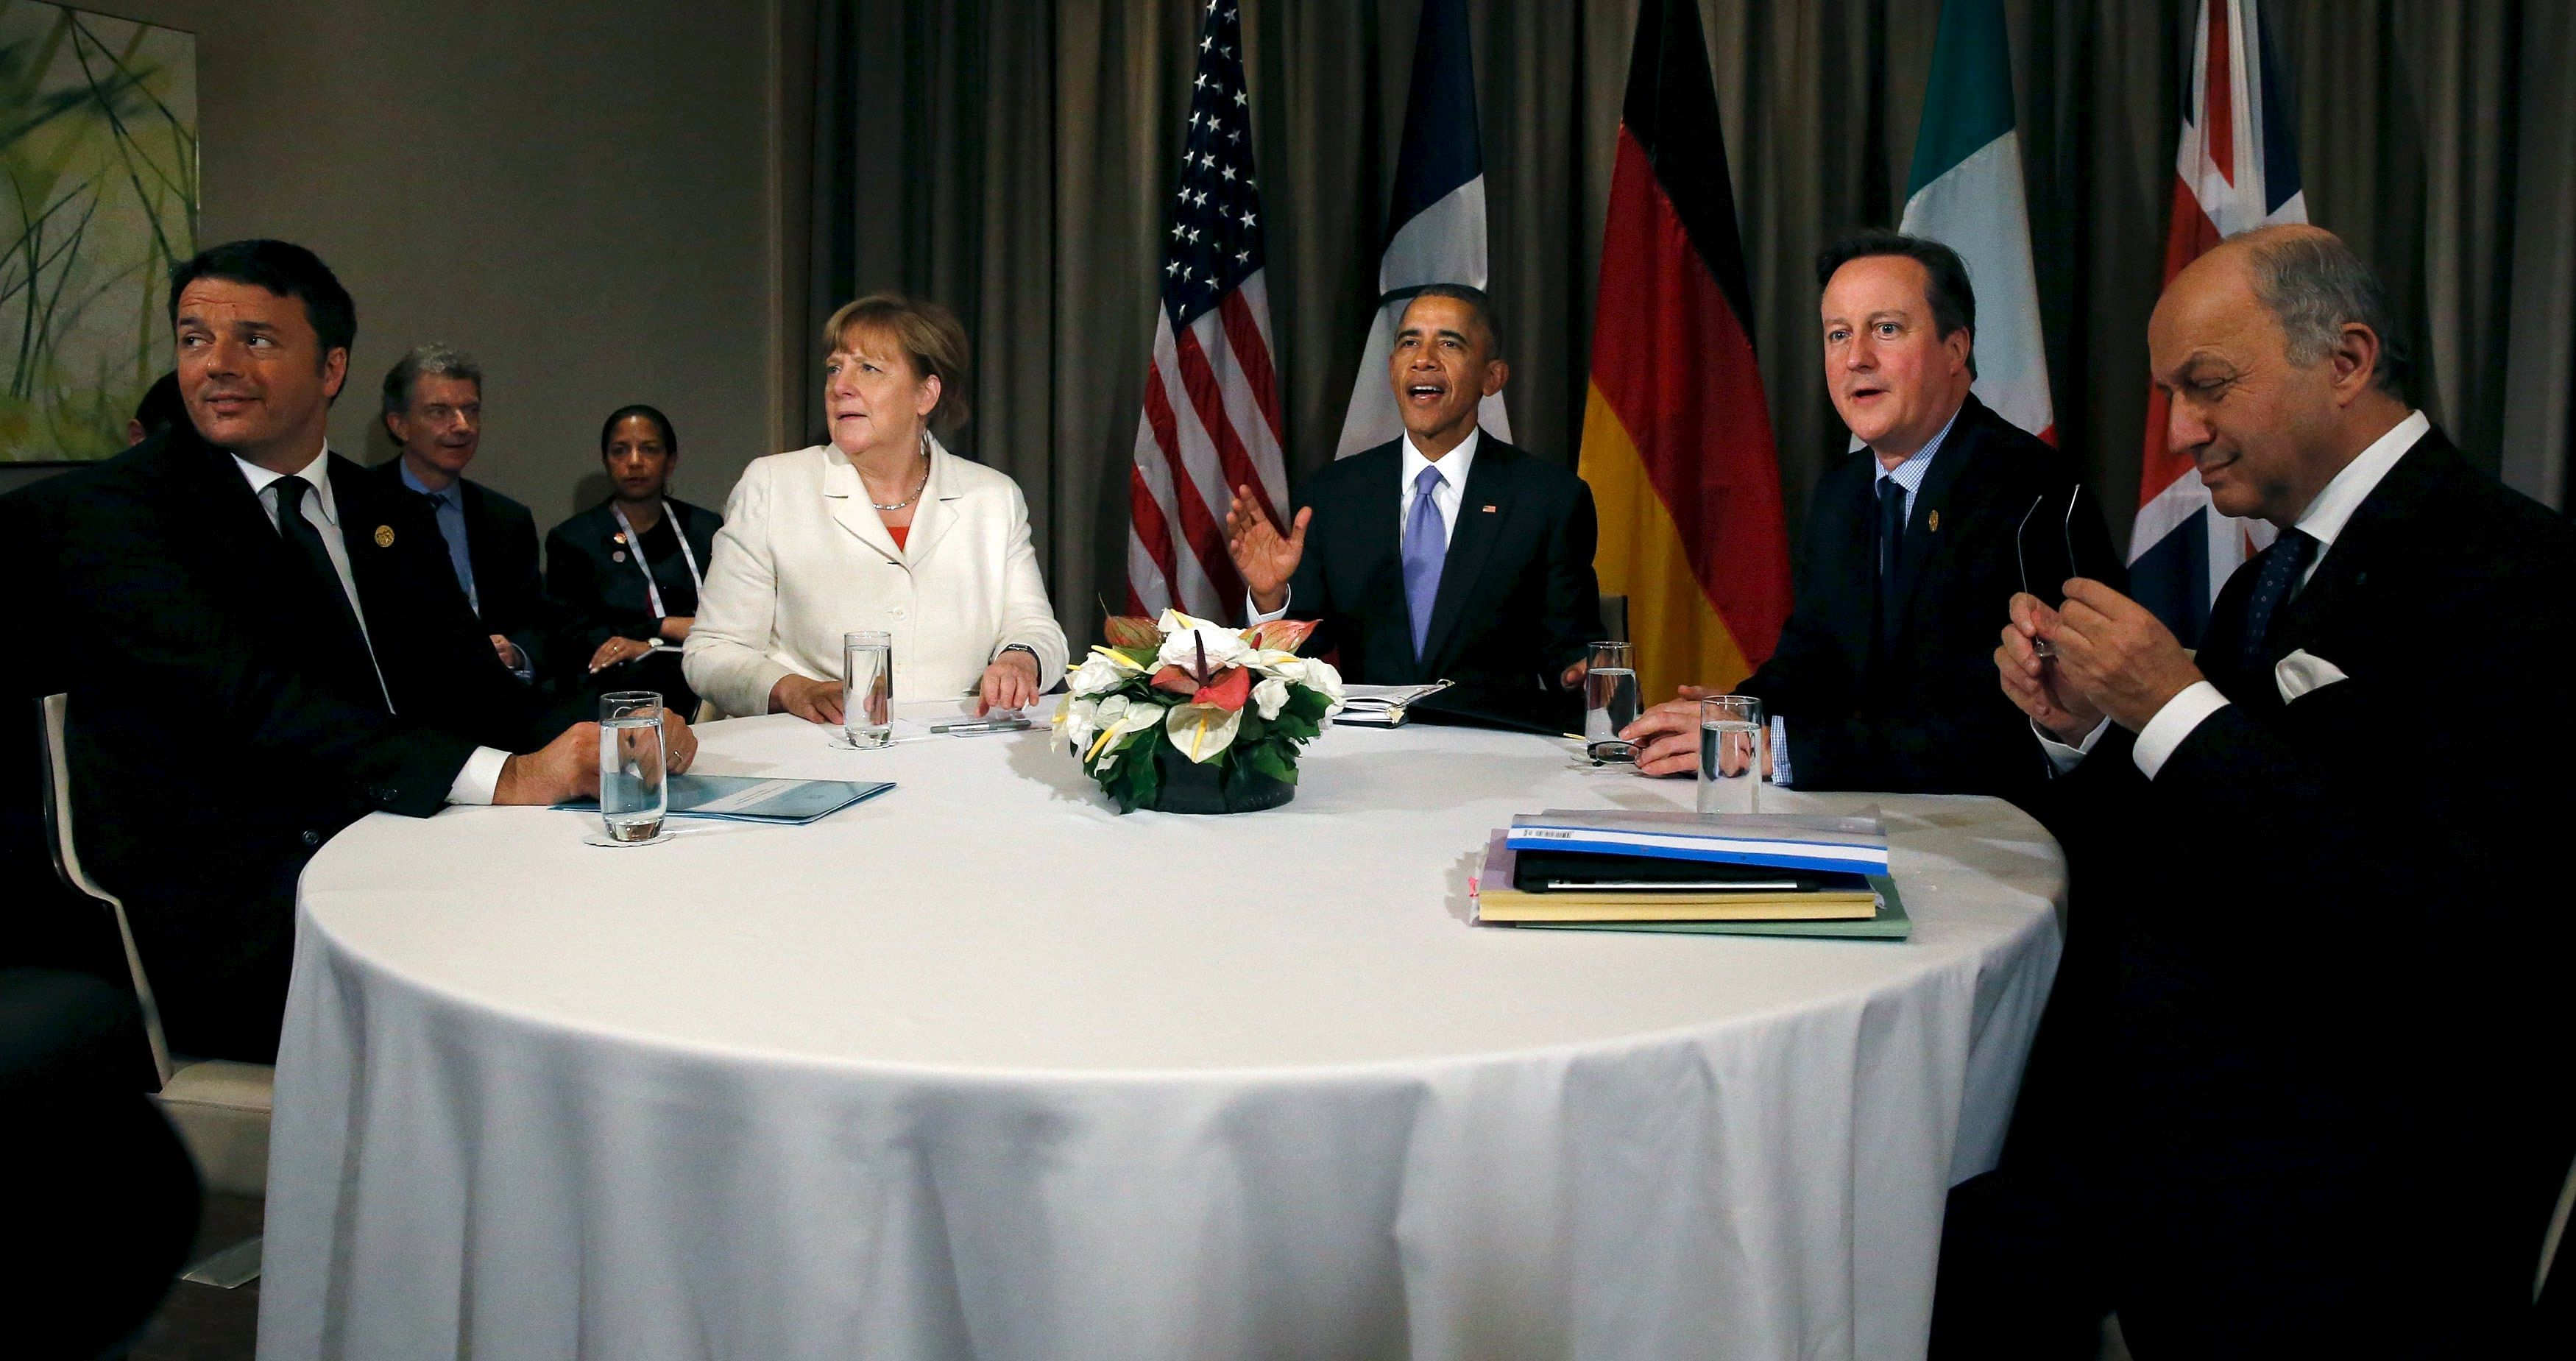 (From left) Italy's Prime Minister Matteo Renzi, Germany's Chancellor Angela Merkel, US President Barack Obama, Britain's Prime Minister David Cameron and France's Foreign Minister Laurent Fabius at a multilateral meeting yesterday.